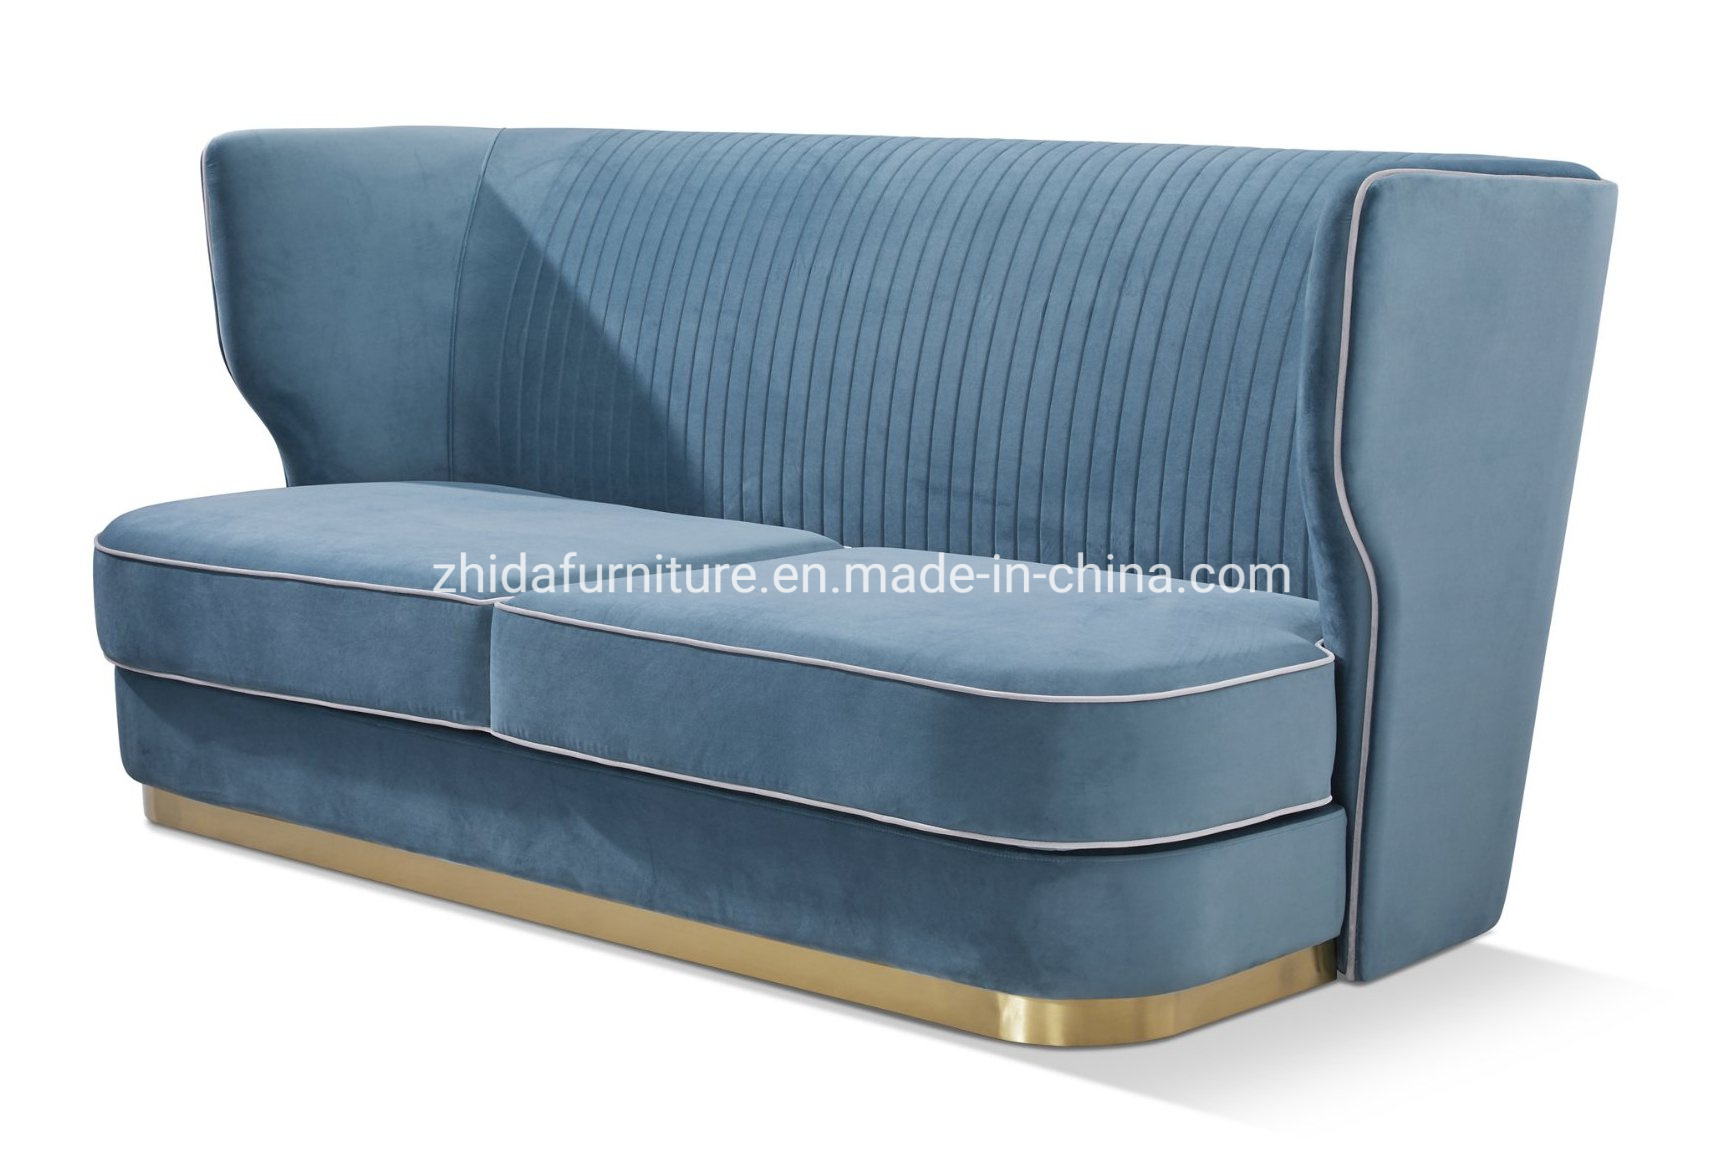 Prime Hot Item Living Room Furniture High Back Sofa For Hotel Lobby Reception Pdpeps Interior Chair Design Pdpepsorg